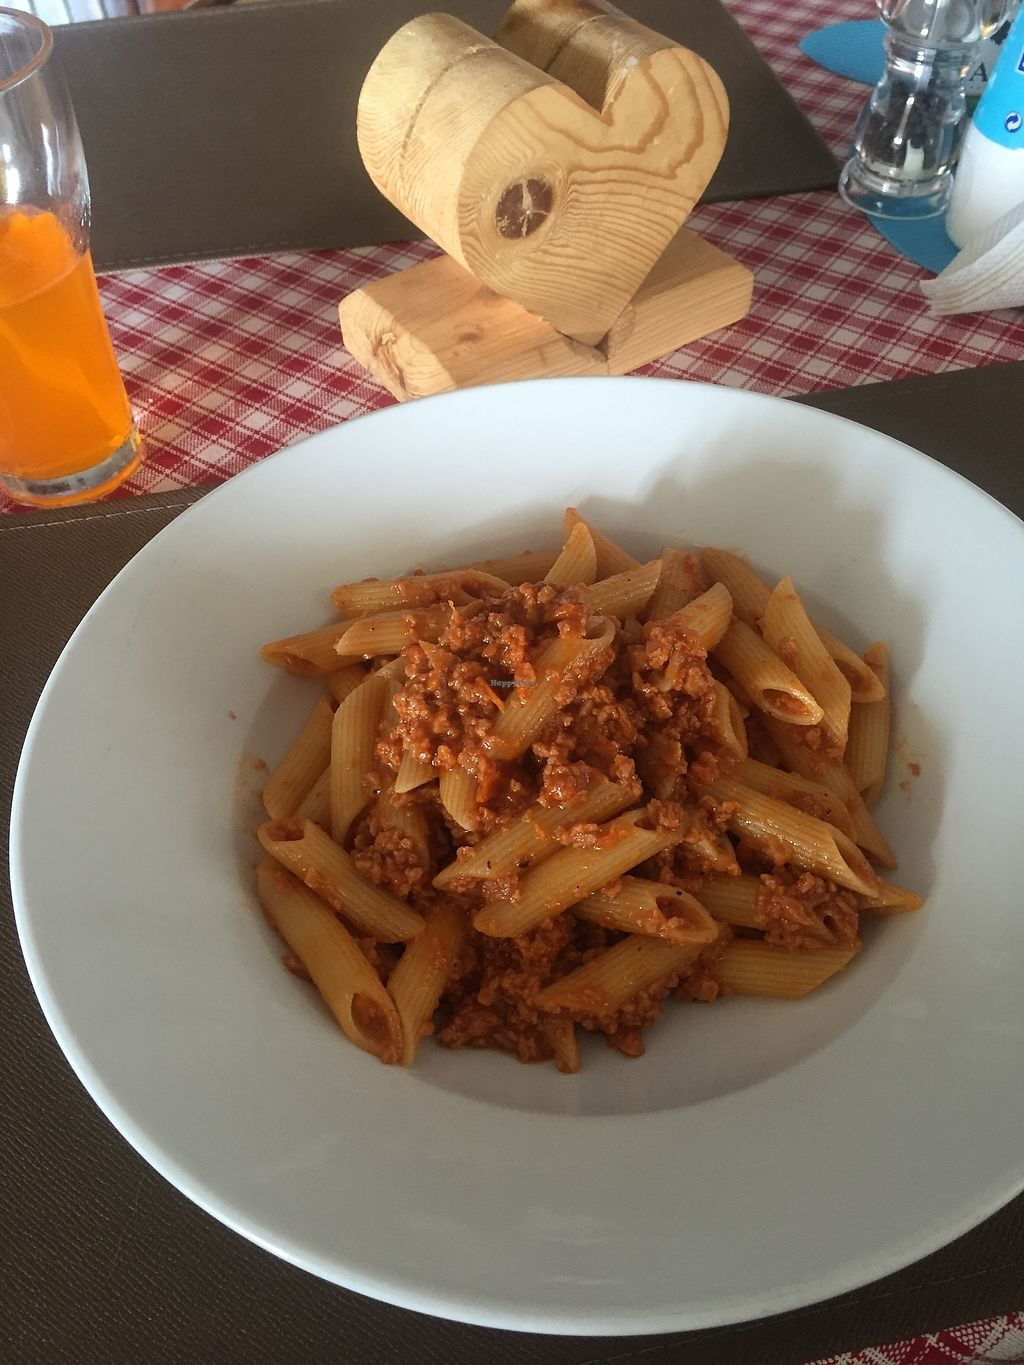 """Photo of By Valeria  by <a href=""""/members/profile/245199"""">245199</a> <br/>Vegan bolognese <br/> December 12, 2017  - <a href='/contact/abuse/image/84967/334954'>Report</a>"""